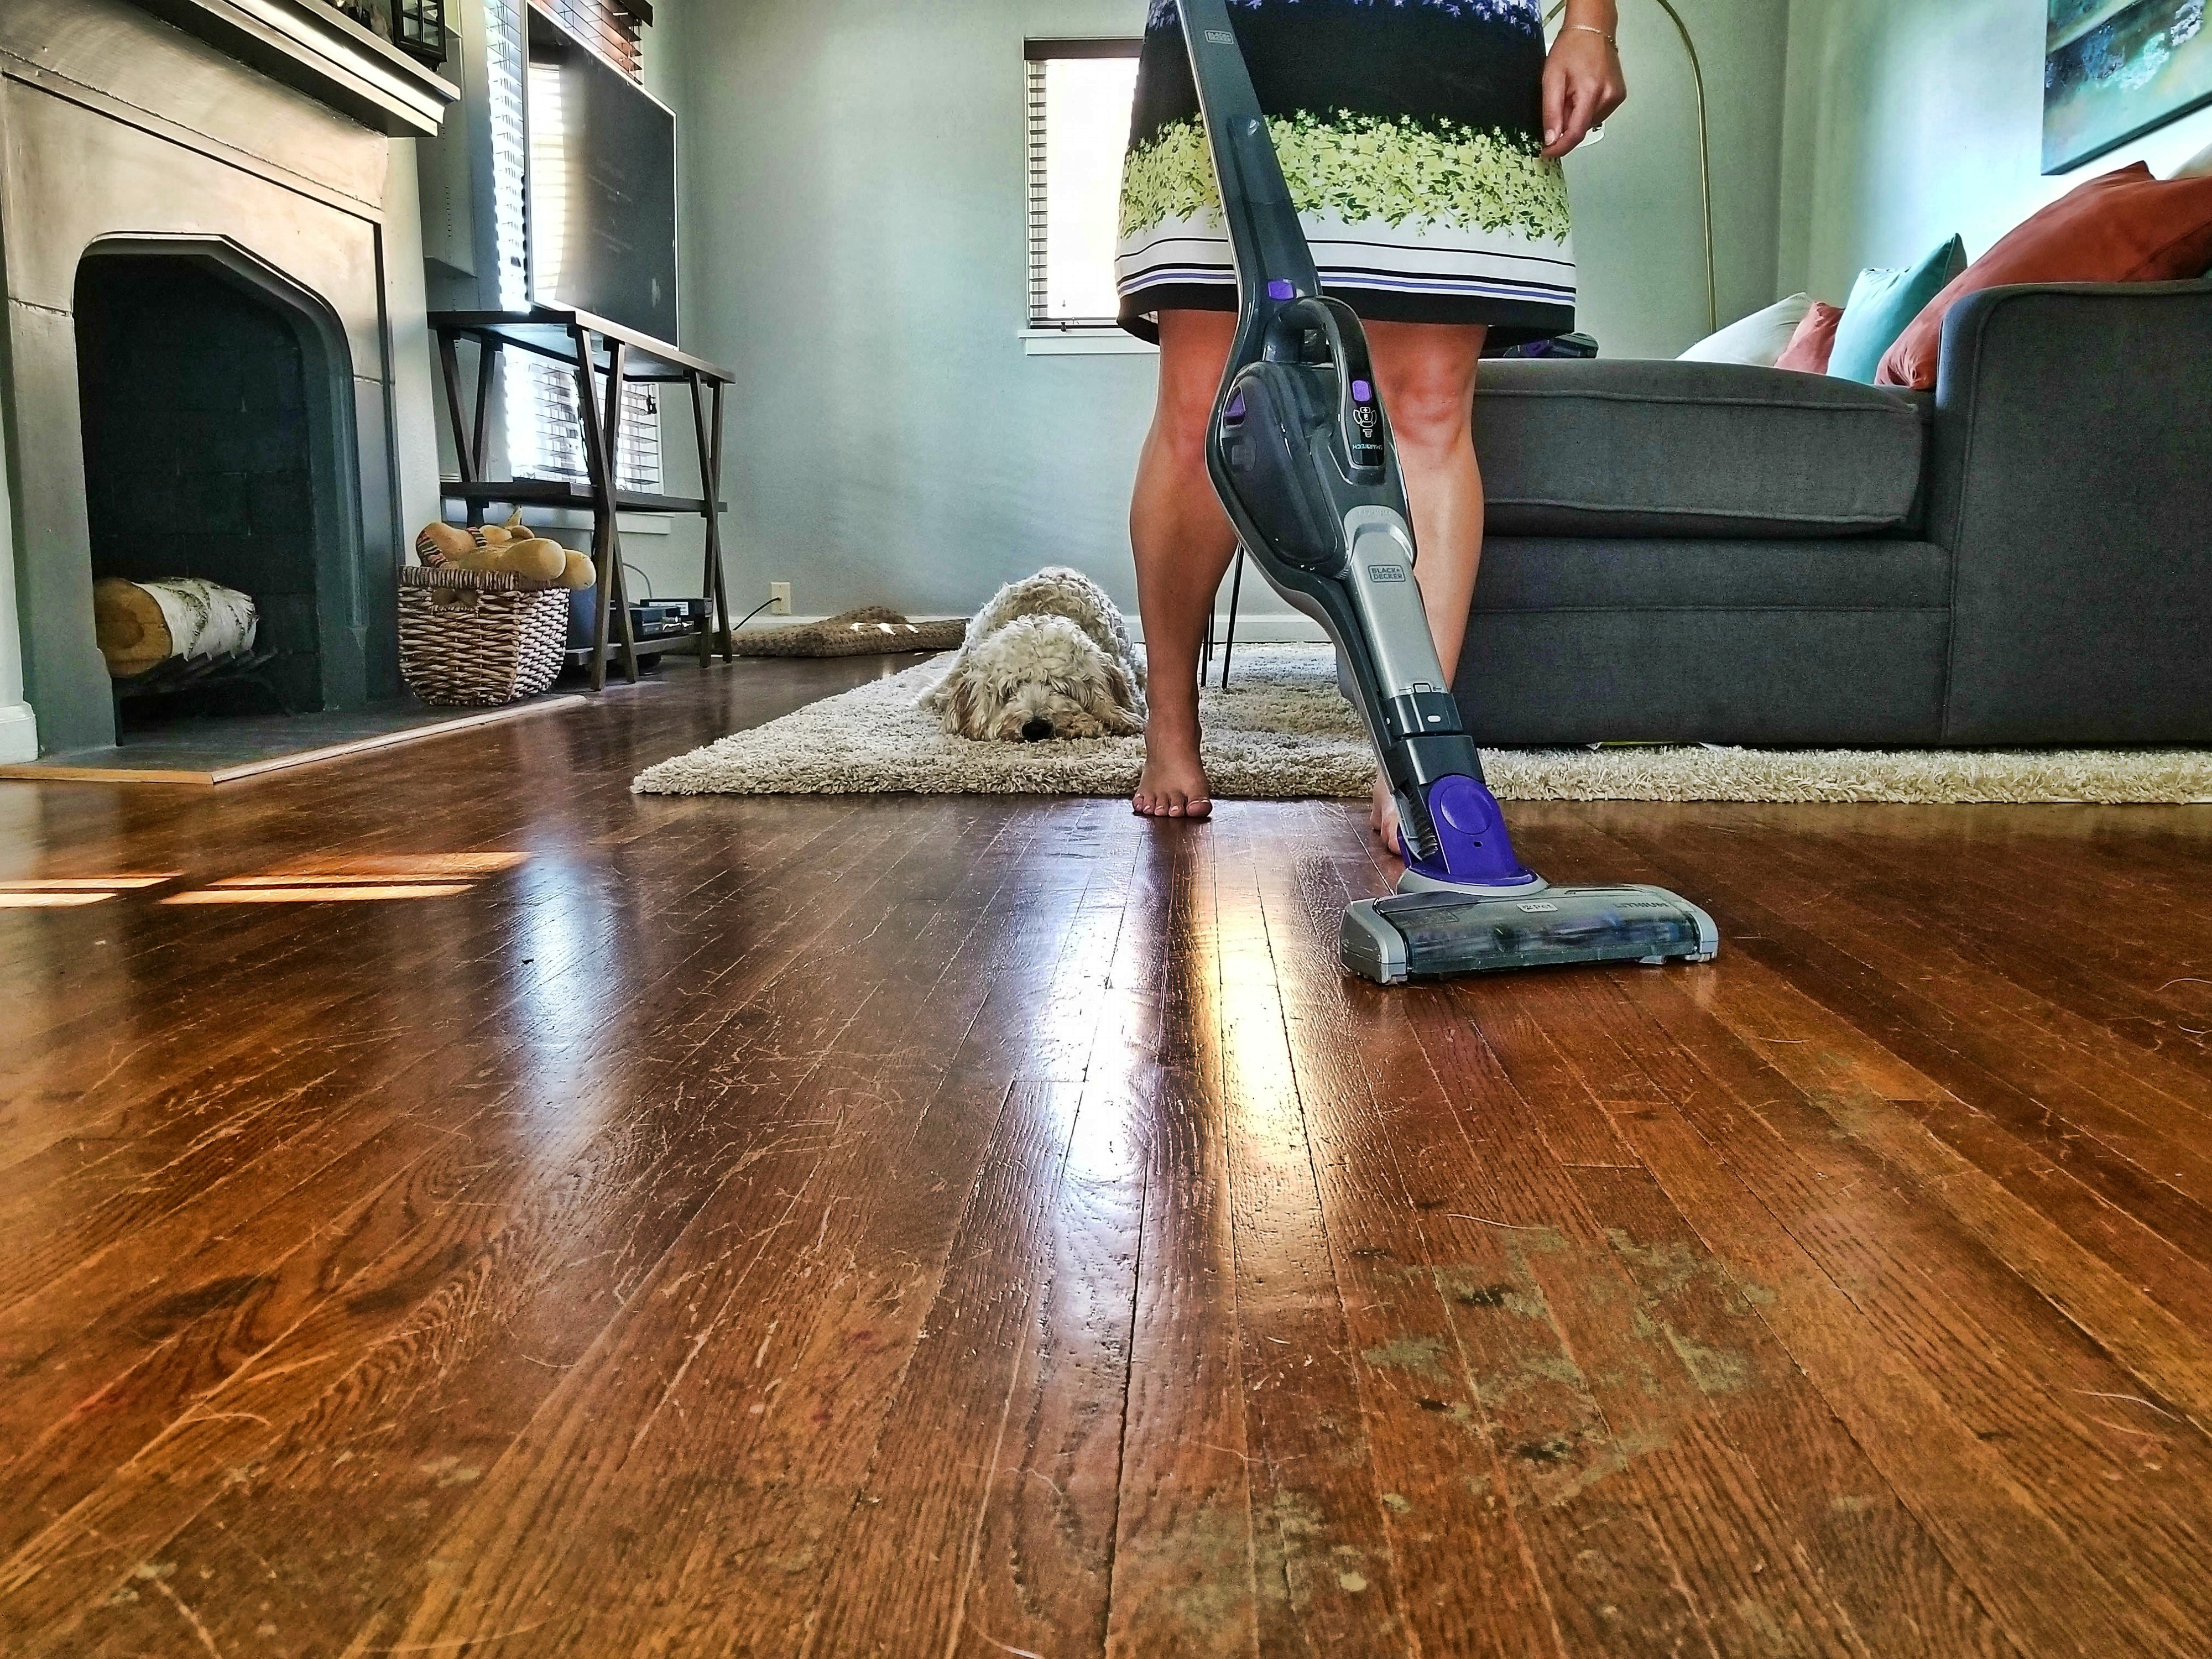 reviews floor wood trusted cleaner hard vacuum karcher review